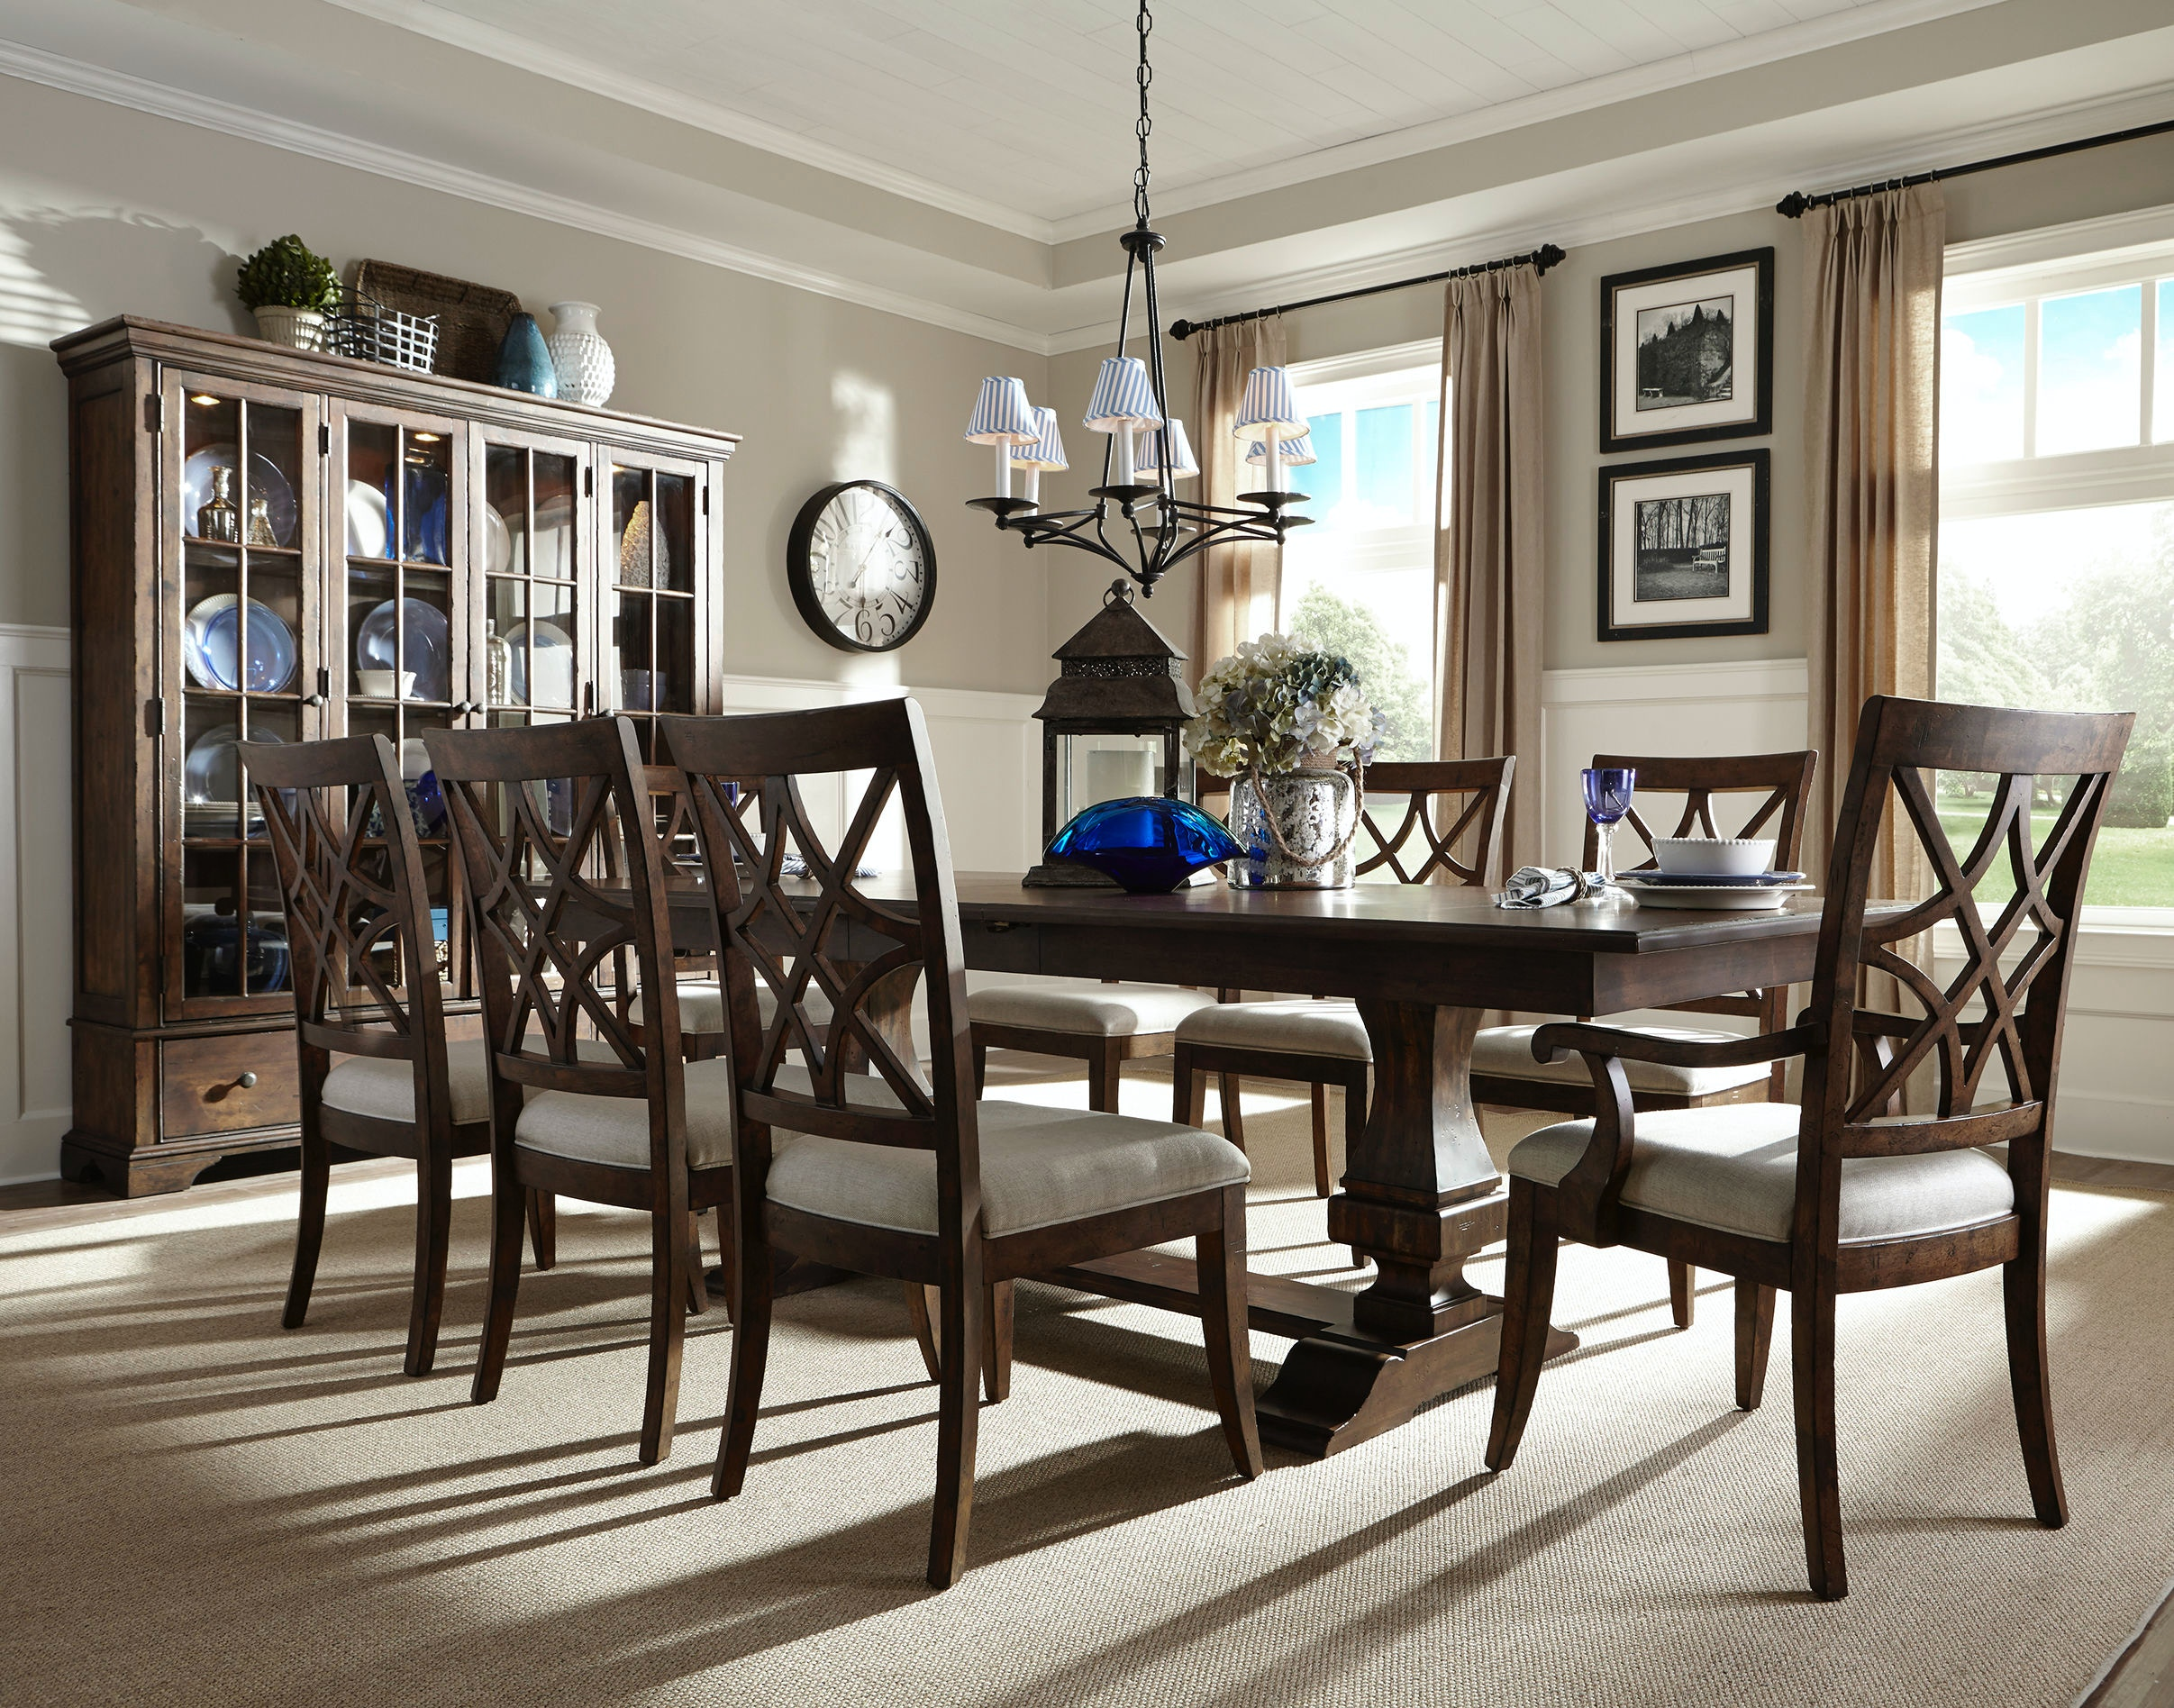 klaussner international dining room trisha yearwood 920 dining room rh klaussner hanksfurniture com